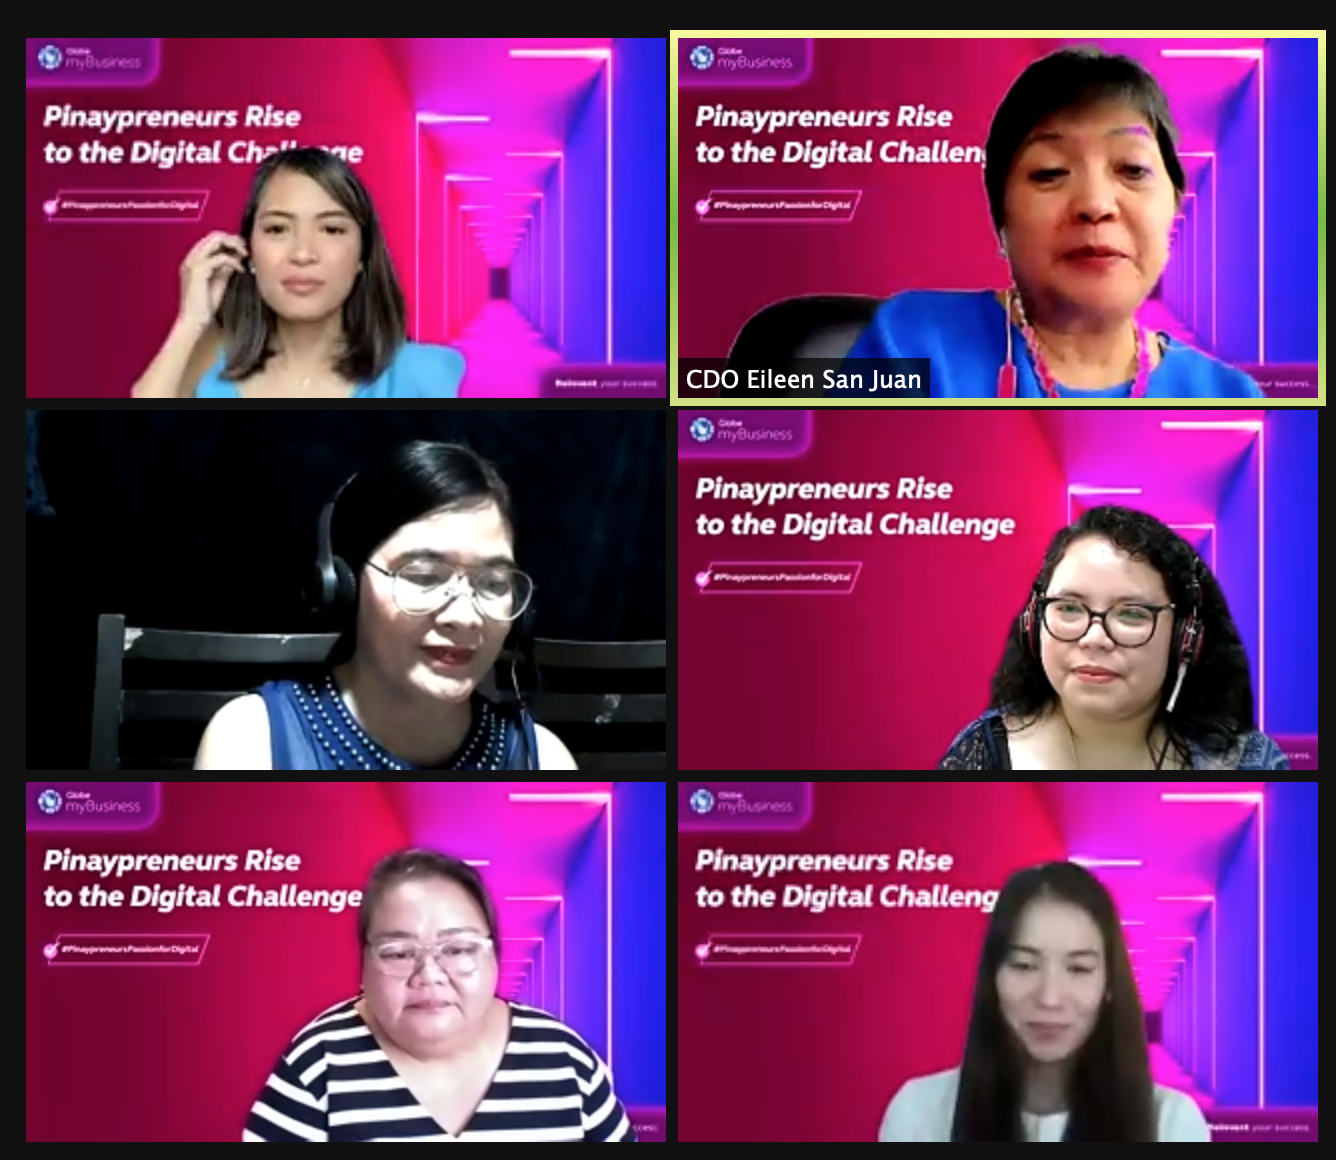 """Women at the helm of successful businesses honored at Globe's """"Pinaypreneurs Rise to the Digital Challenge"""" webinar: (clockwise from top left) Webinar Host Sonjia Calit, Cagayan De Oro Trade and Investment Promotion Center Local Economic and Investment Promotion Officer Eileen San Juan, Tagbilaran TIDU OIC City Administrator Cathelyn Torremocha,, trip and Browhaus Managing Director Roberta Abad-Estacion, Masuki Restaurant CEO and President Willen Ma, and City Economic Management and Cooperative Development office GenSan CEMCDO Project Dev Officer Adelyn Yucamco"""